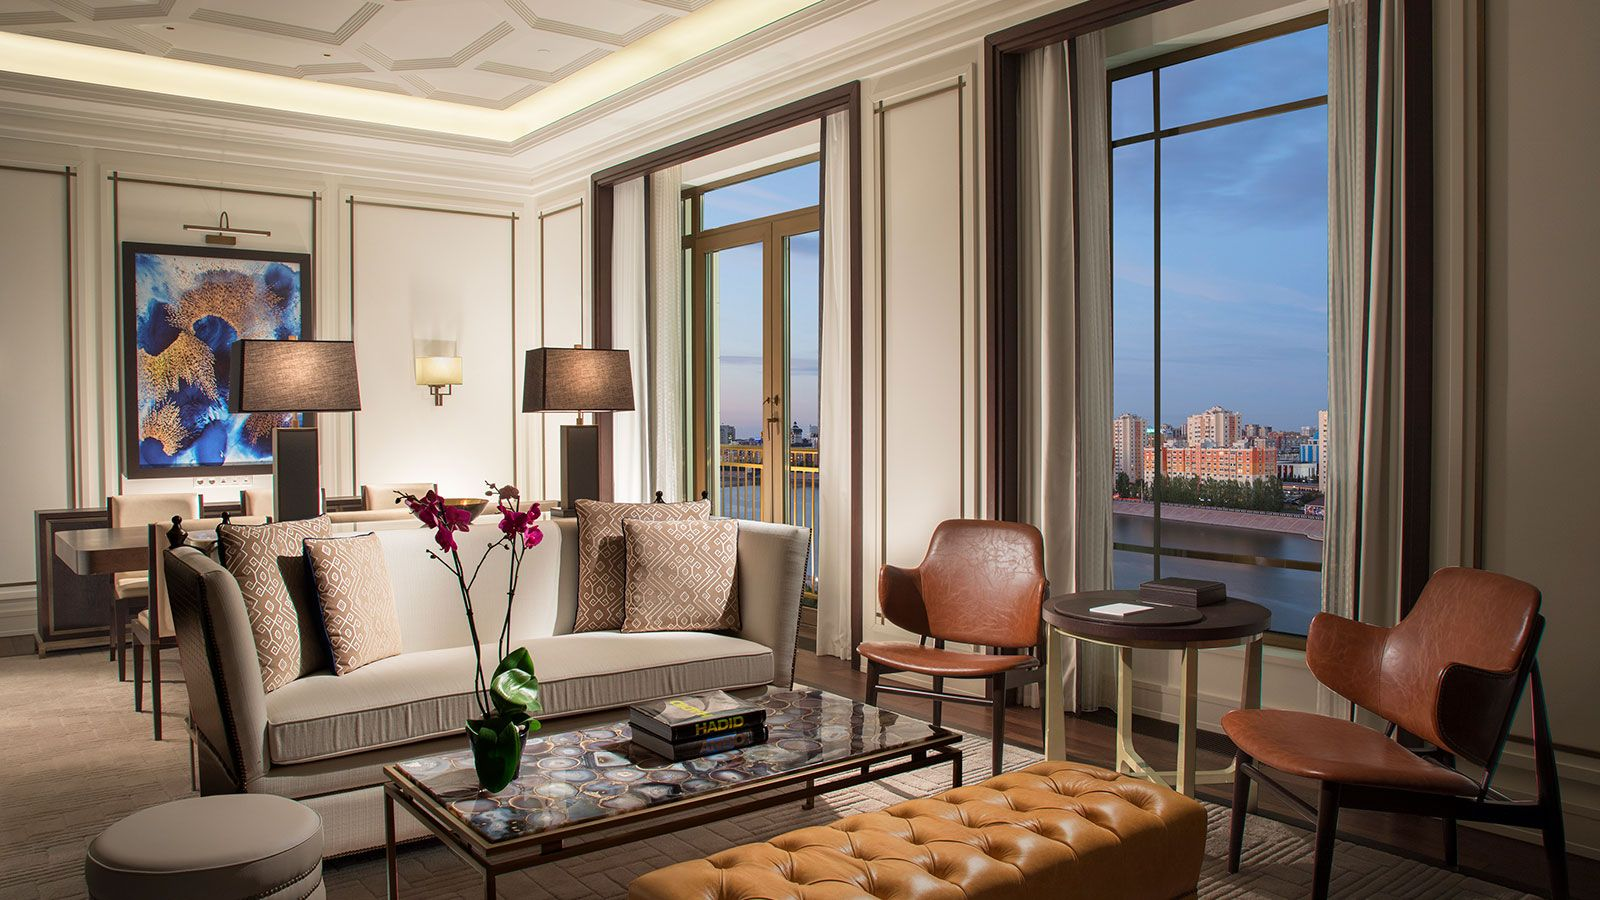 St. Regis Suite - The St. Regis Astana